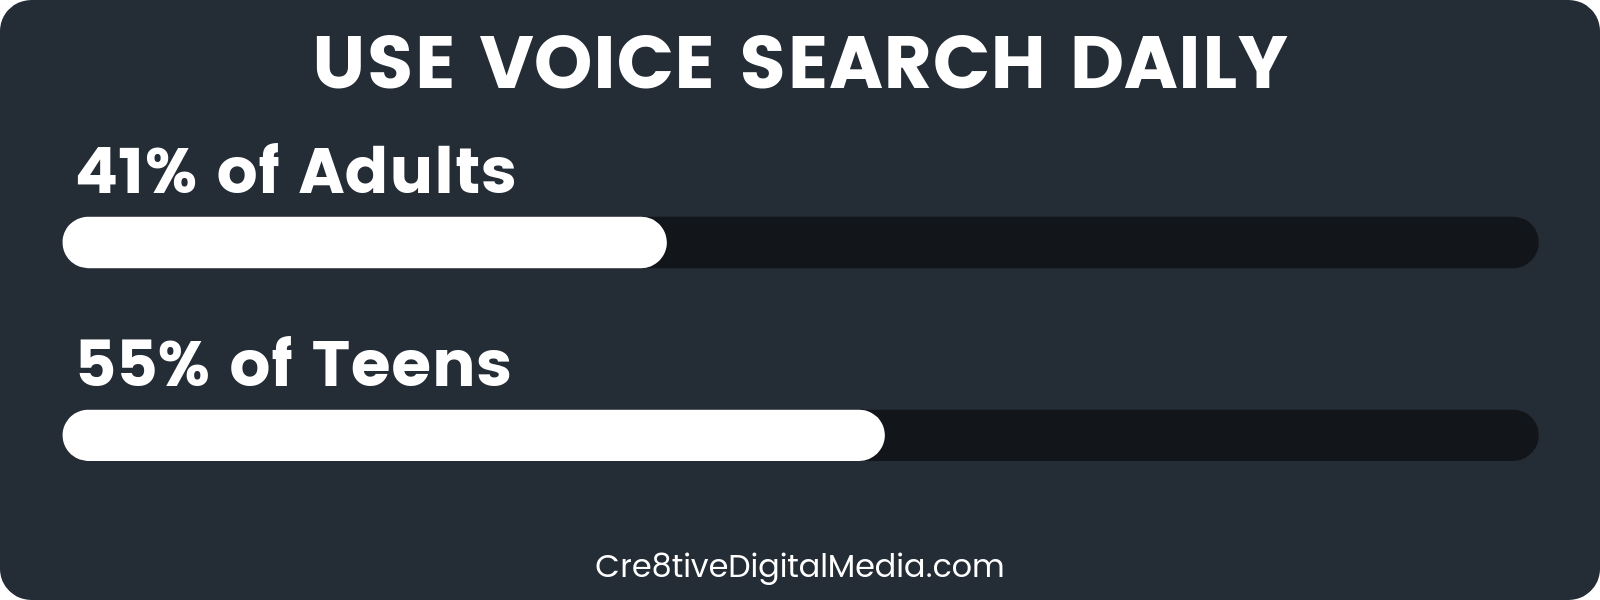 41% of adults & 55% of teens use voice search daily